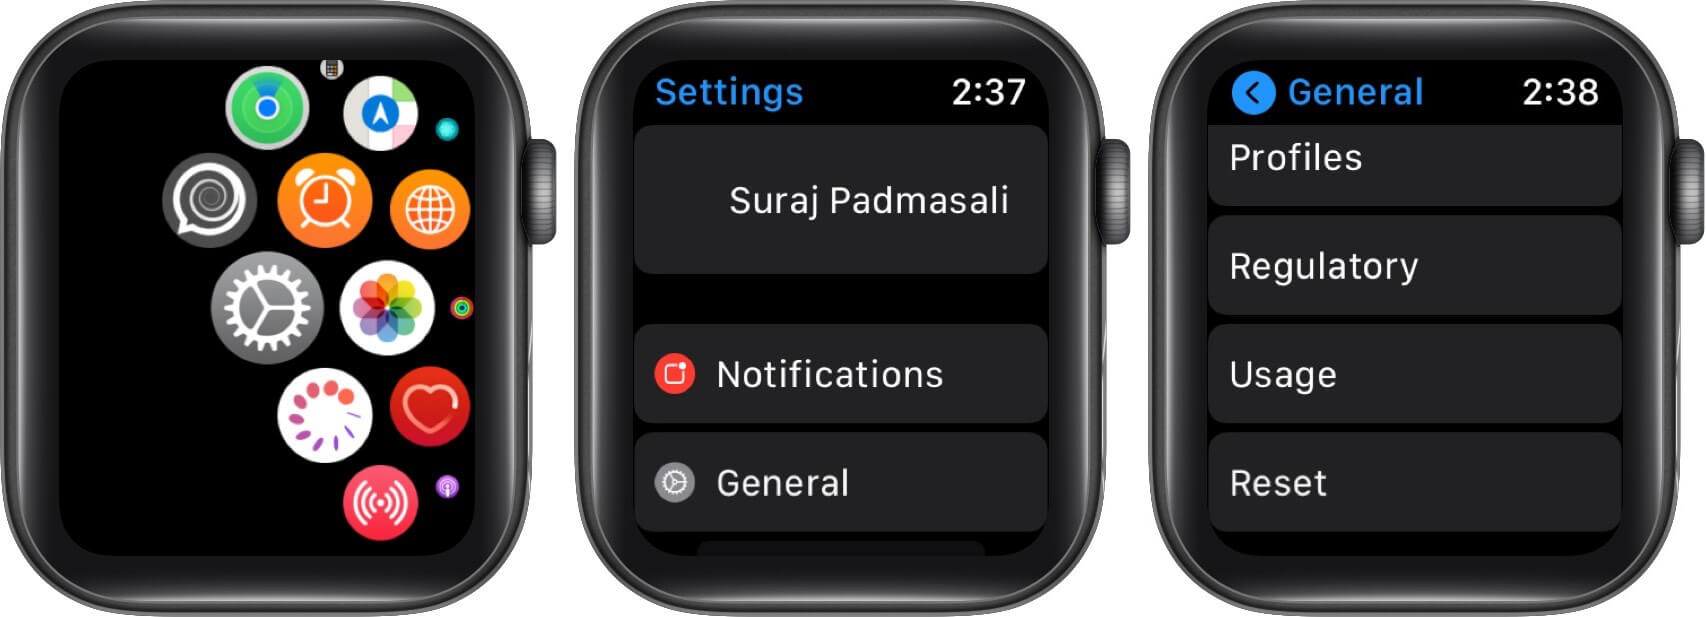 open settings tap general and then press reset on Apple Watch